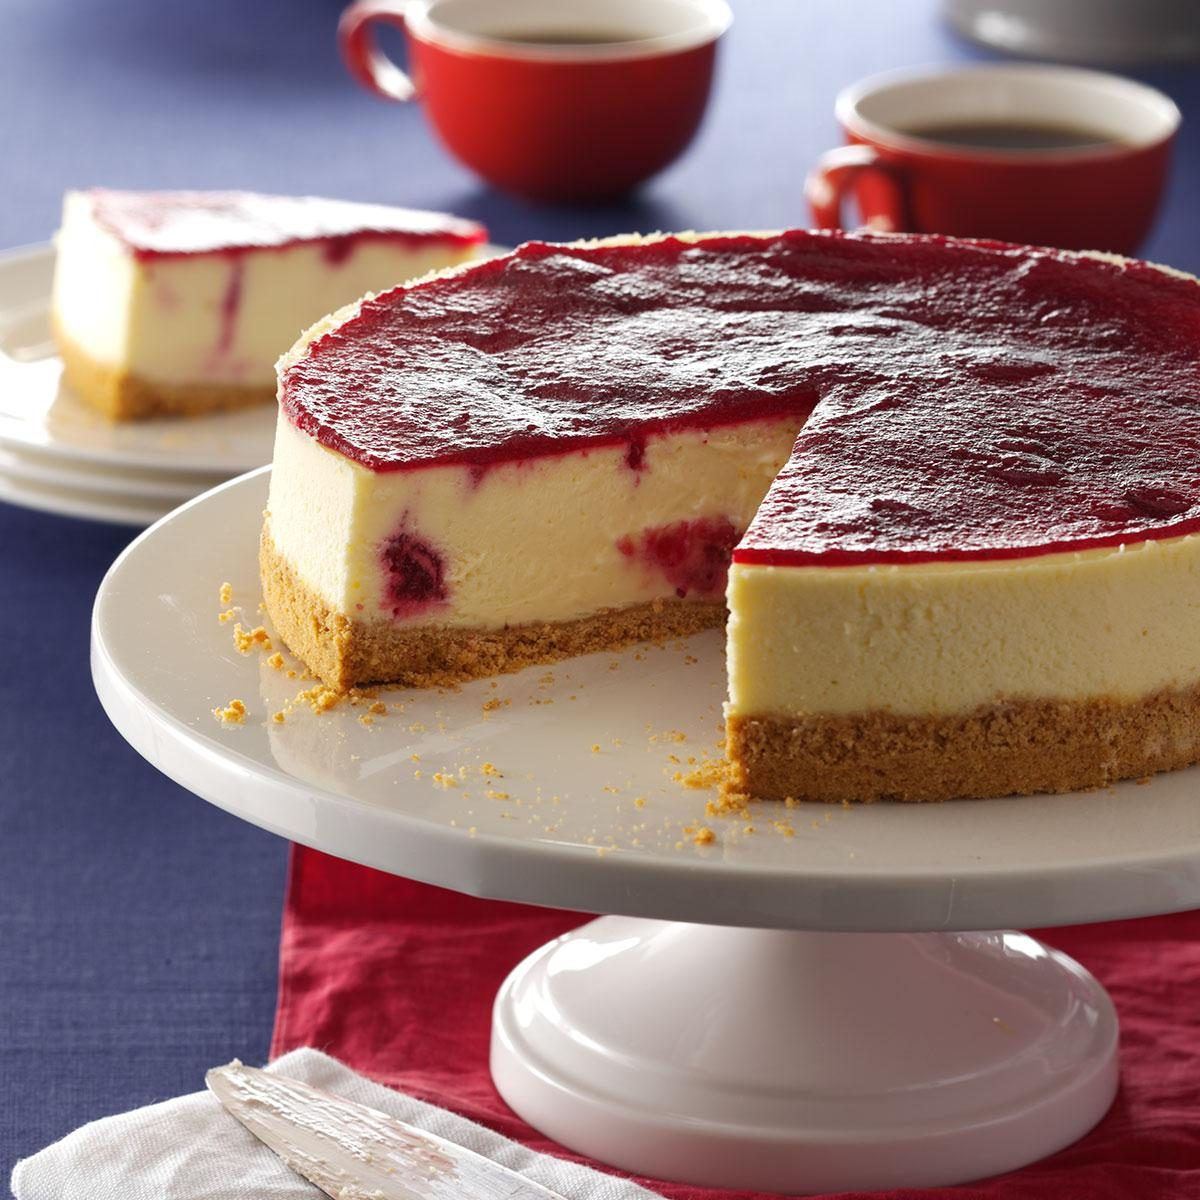 Cranberry Cheesecake Recipe | Taste of Home